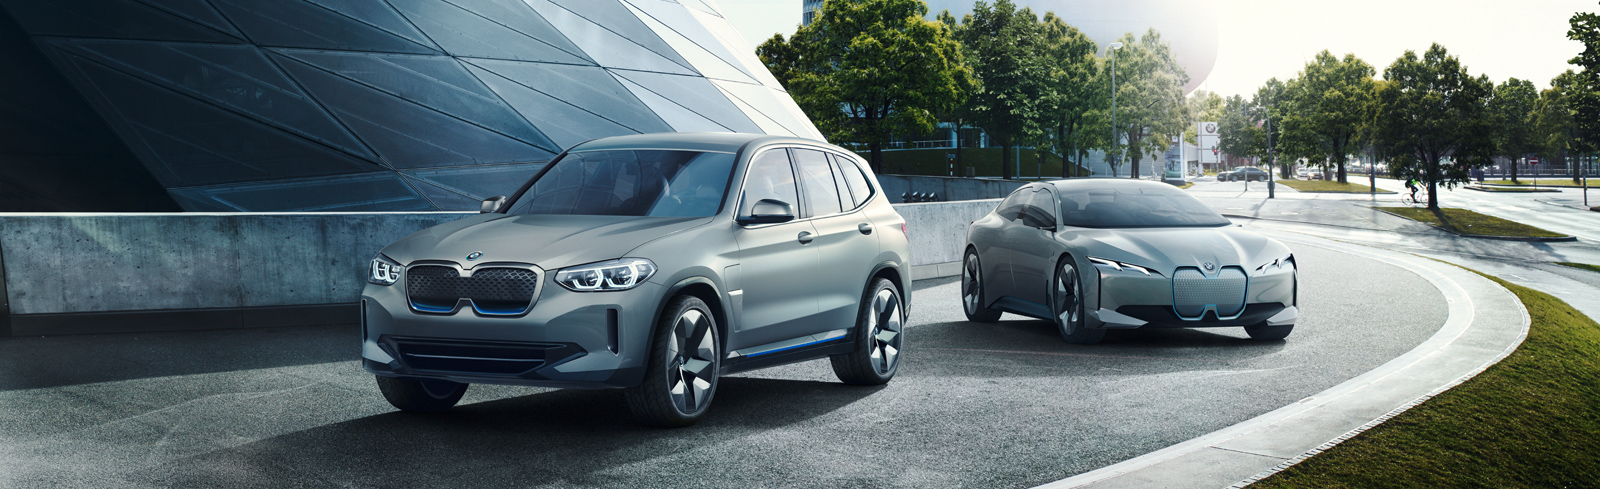 The BMW iX3 will be launched on July 14 during an online event